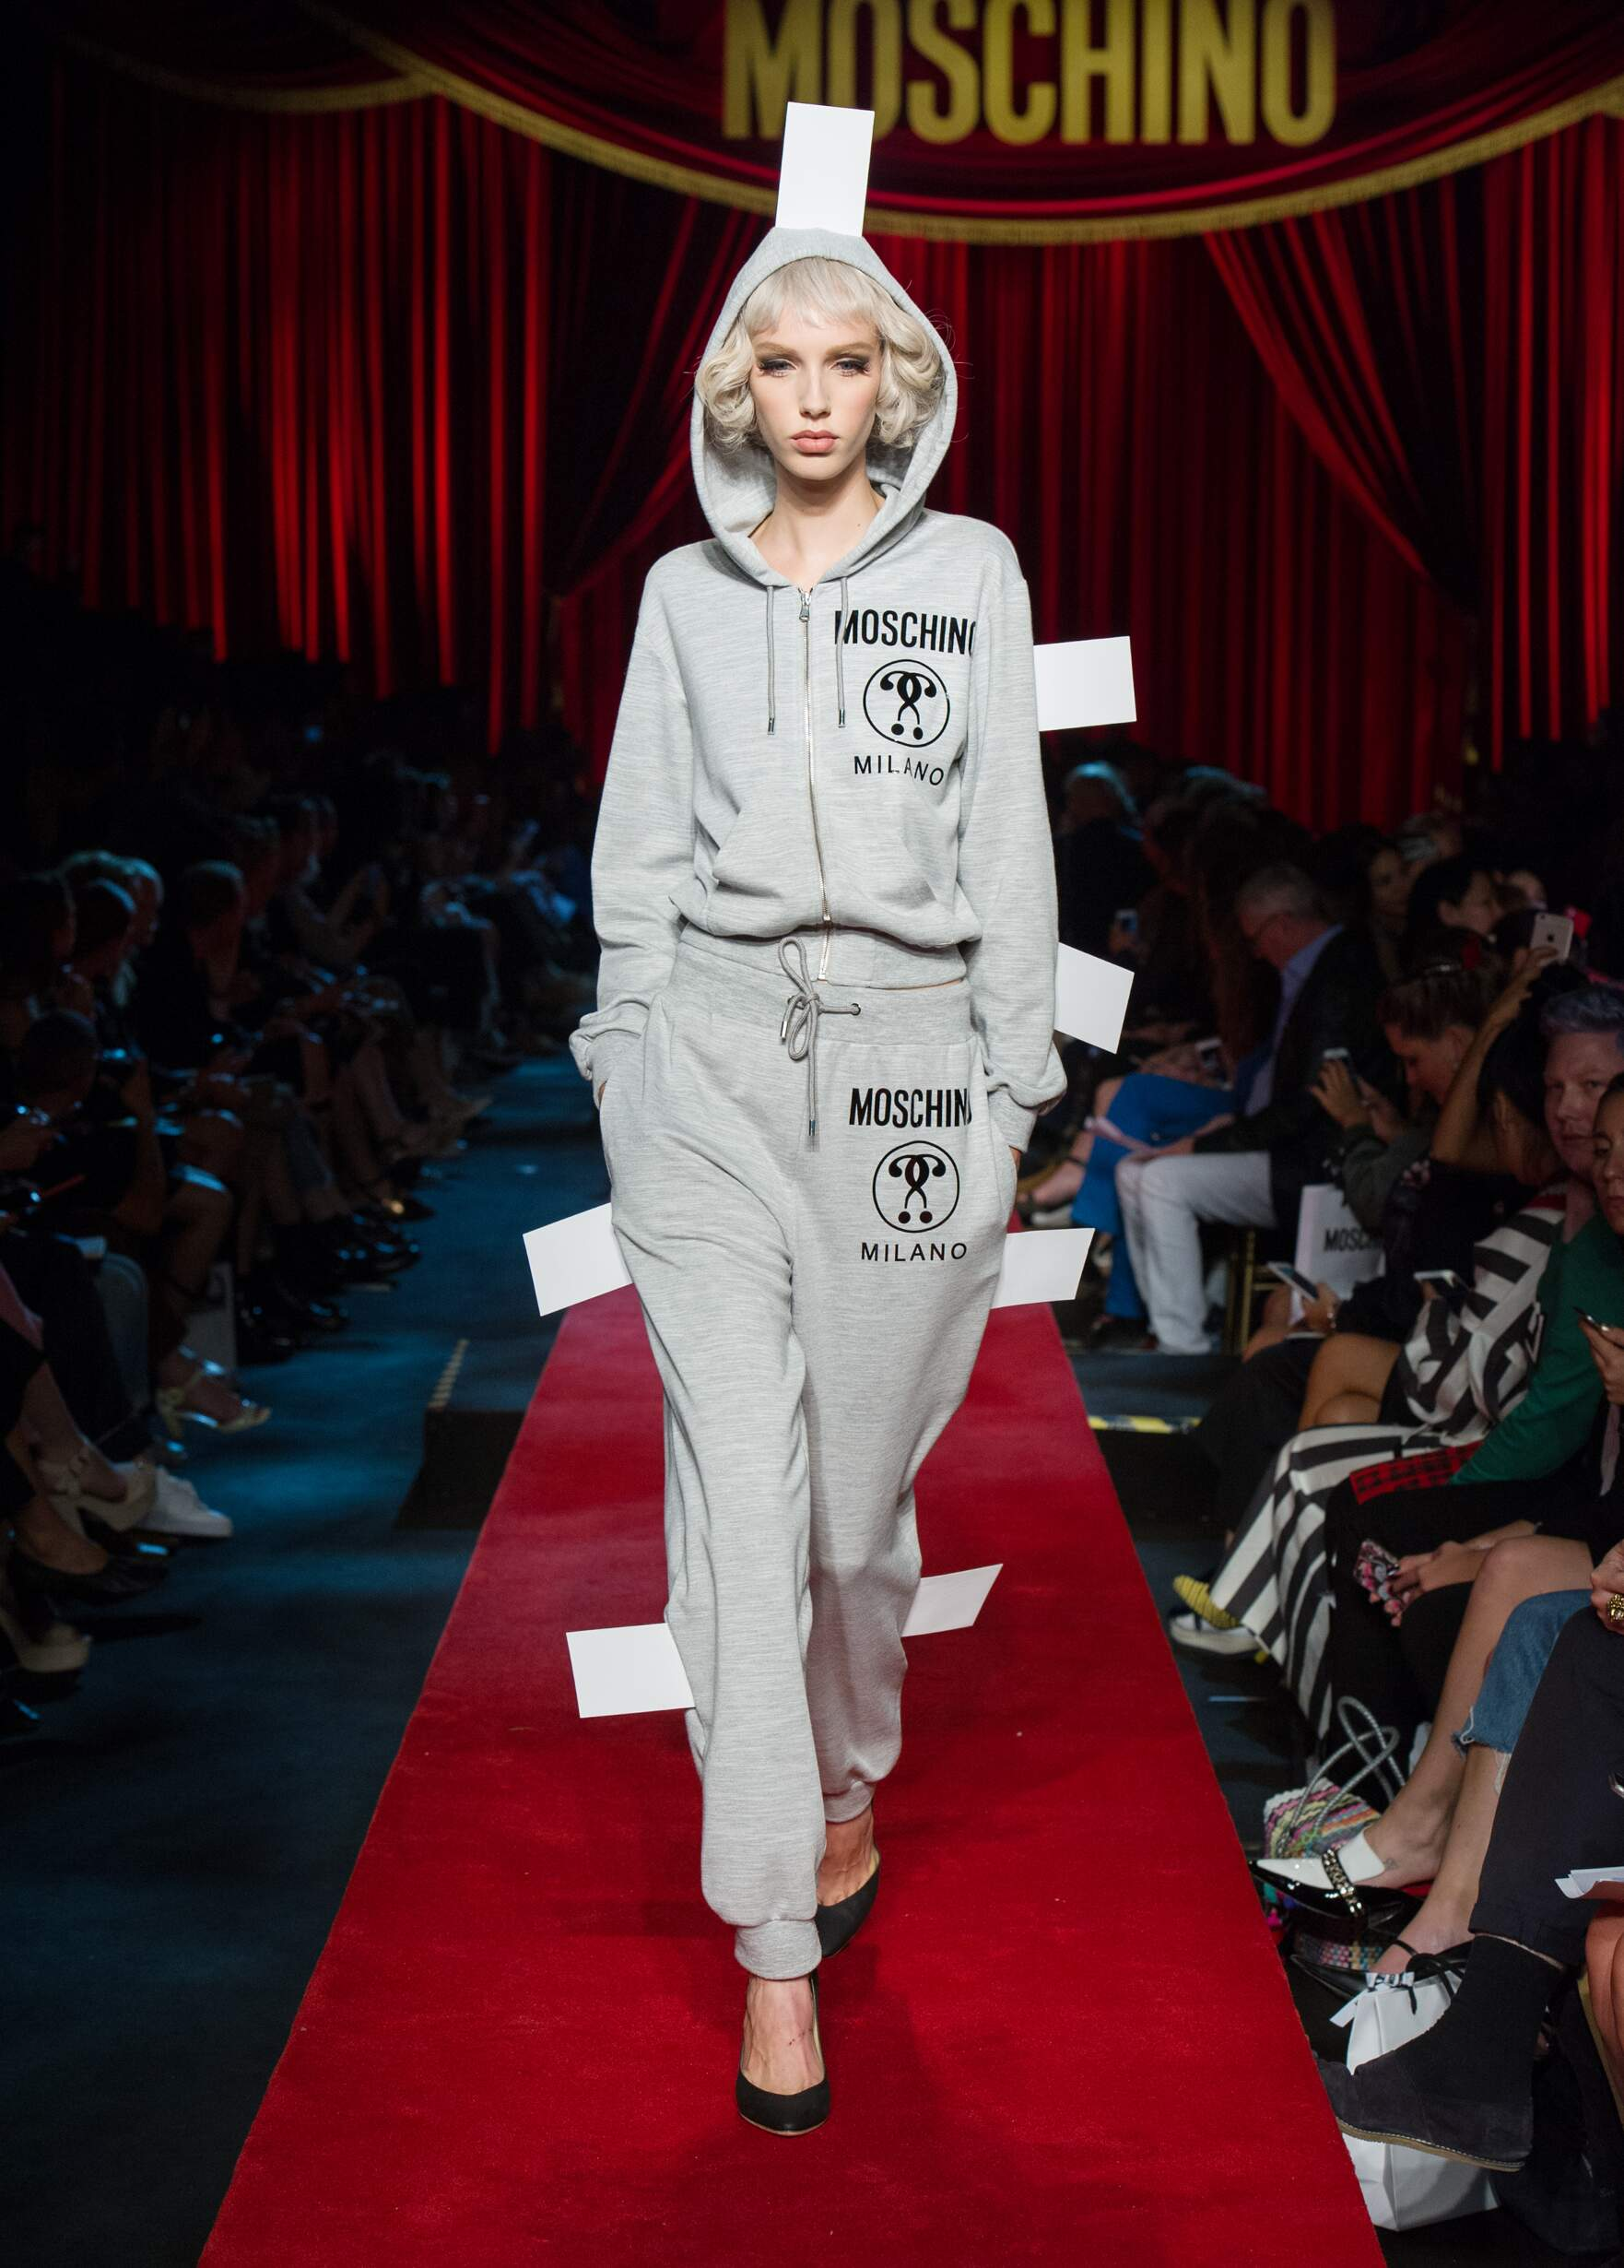 Moschino Fashion Show